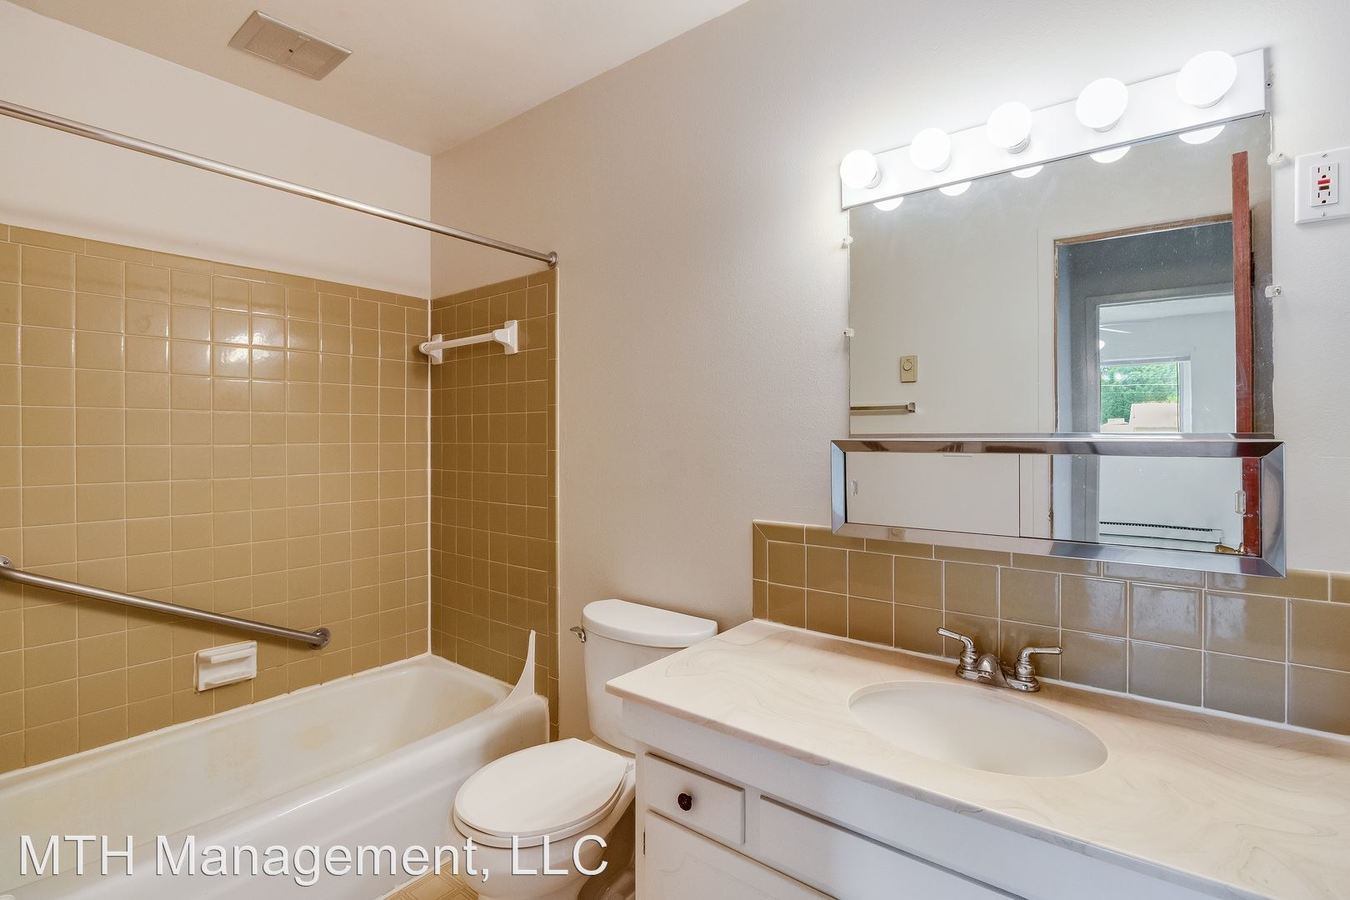 2 Bedrooms 1 Bathroom Apartment for rent at Shaker House Apartments in Charlotte, MI